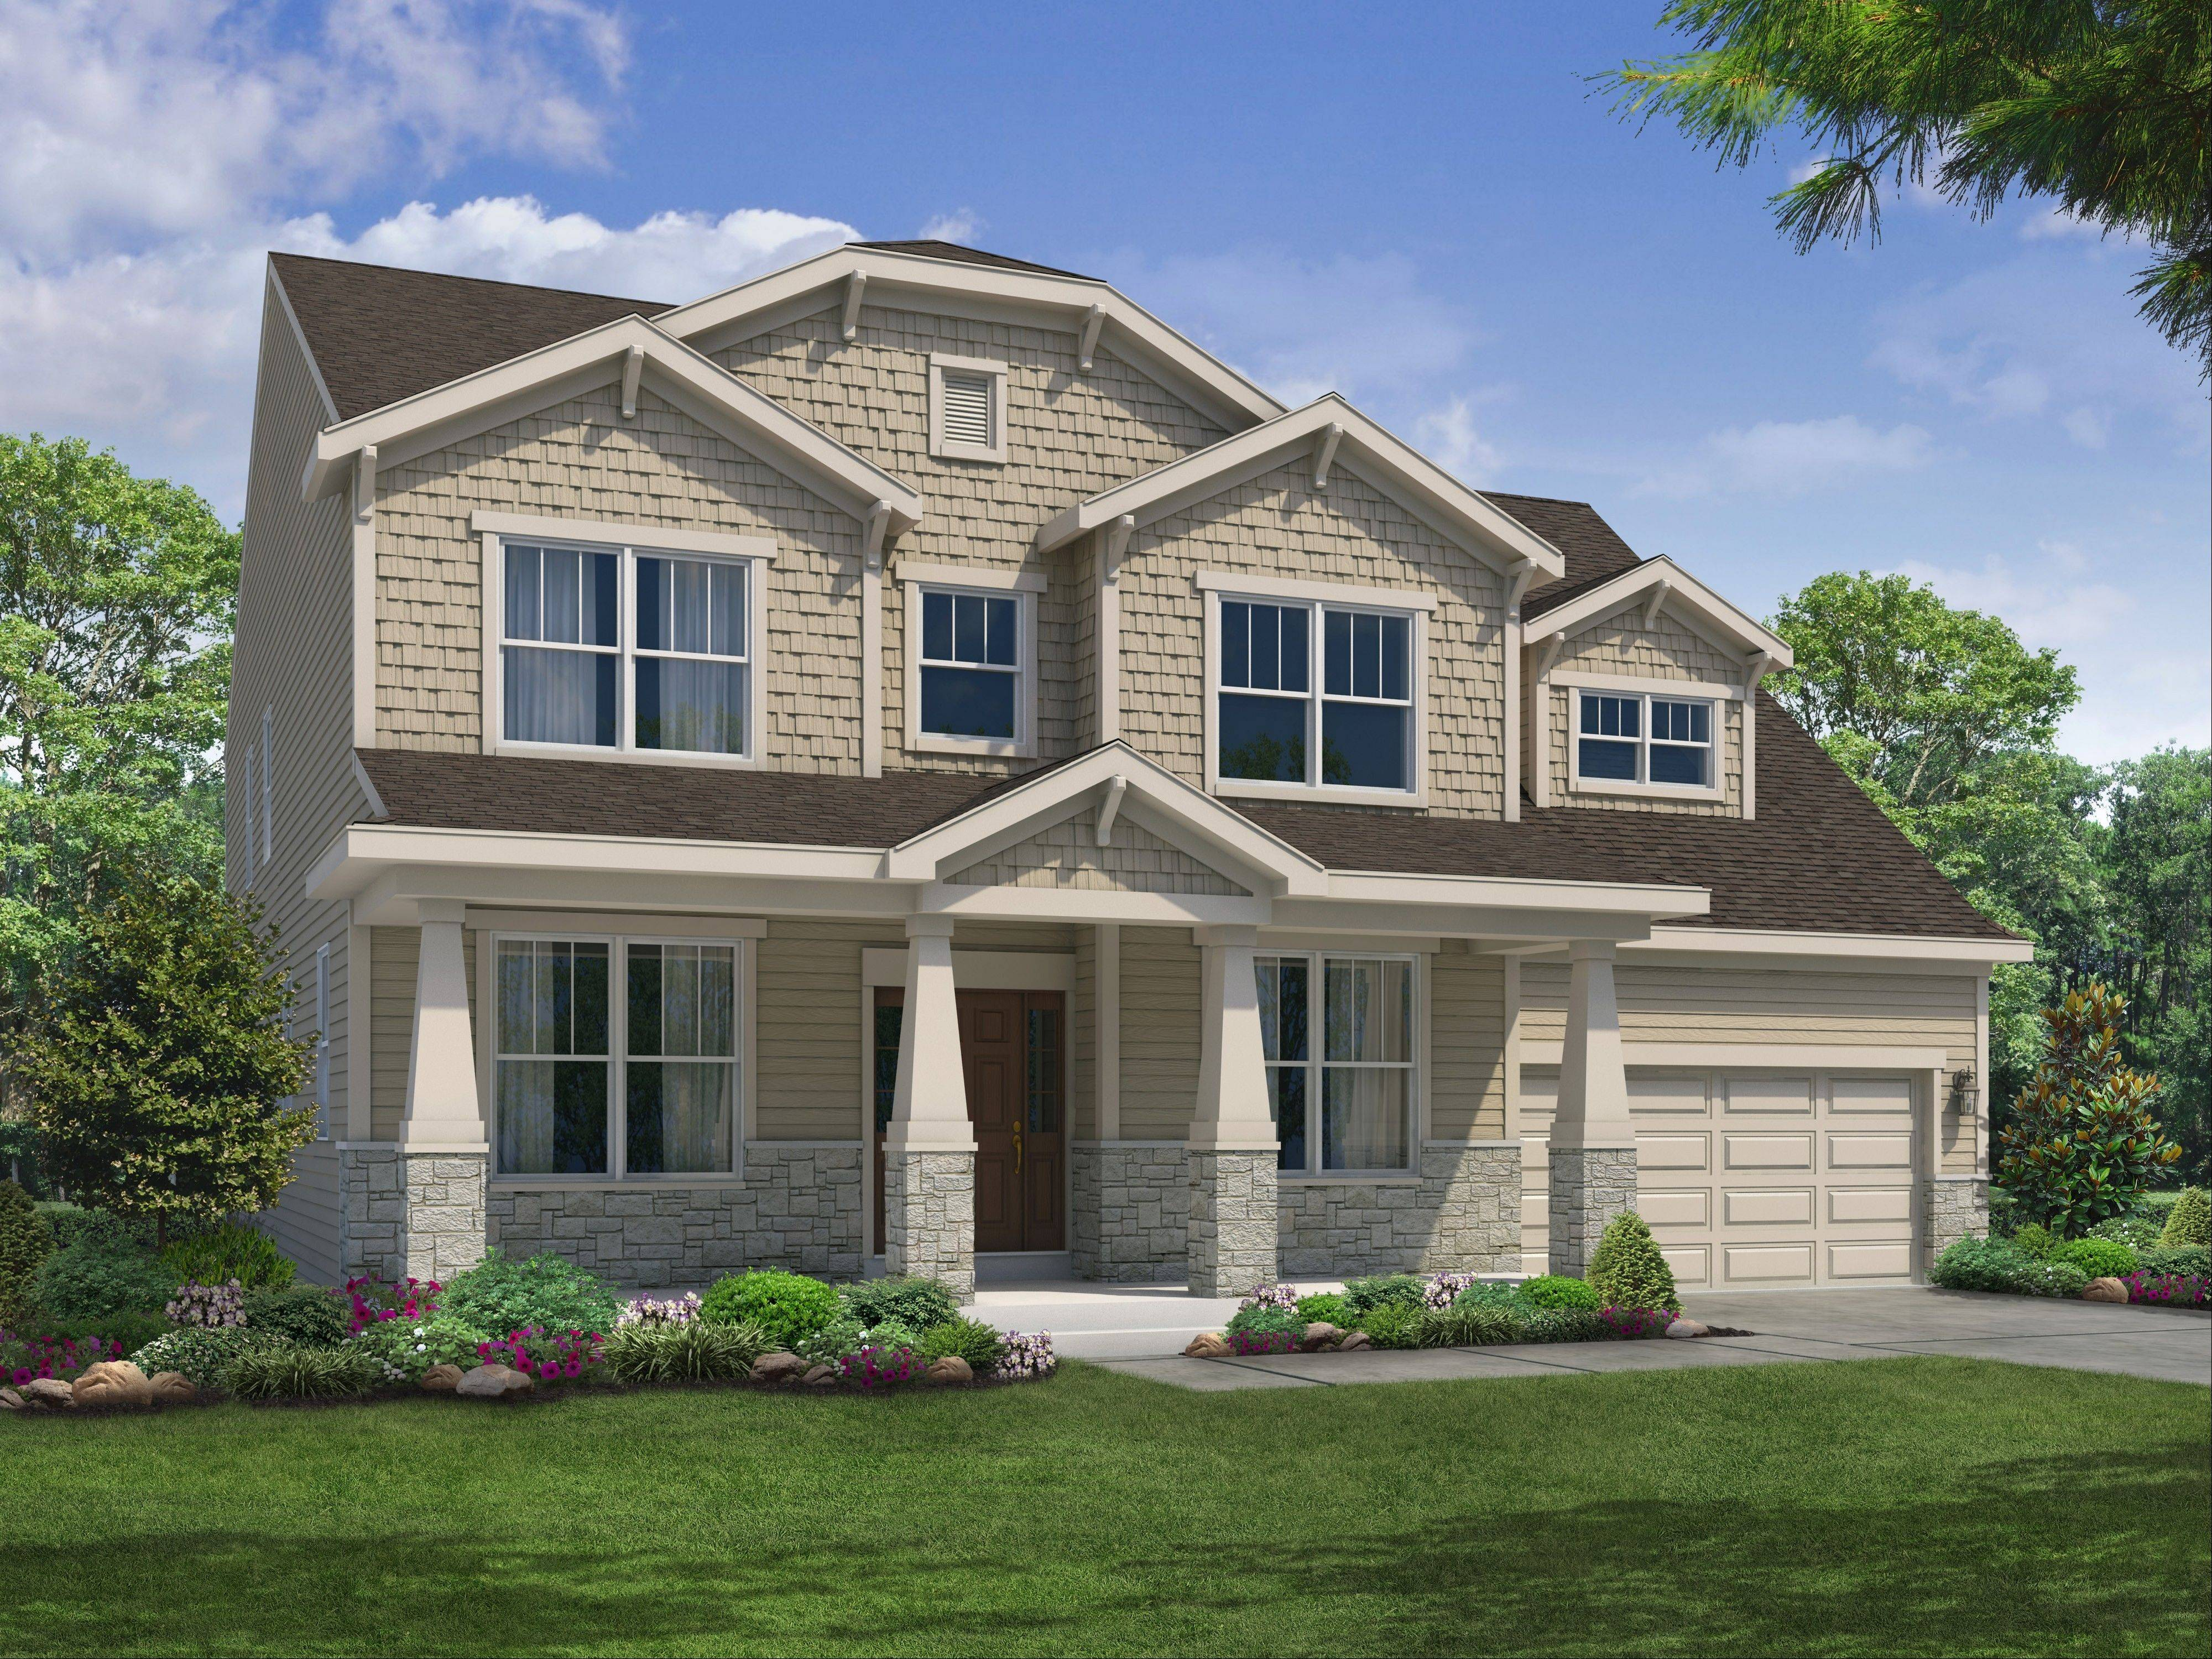 William Ryan Homes� new Historic Americana line of 13 houses are based on classic designs, like this Craftsman floor plan.